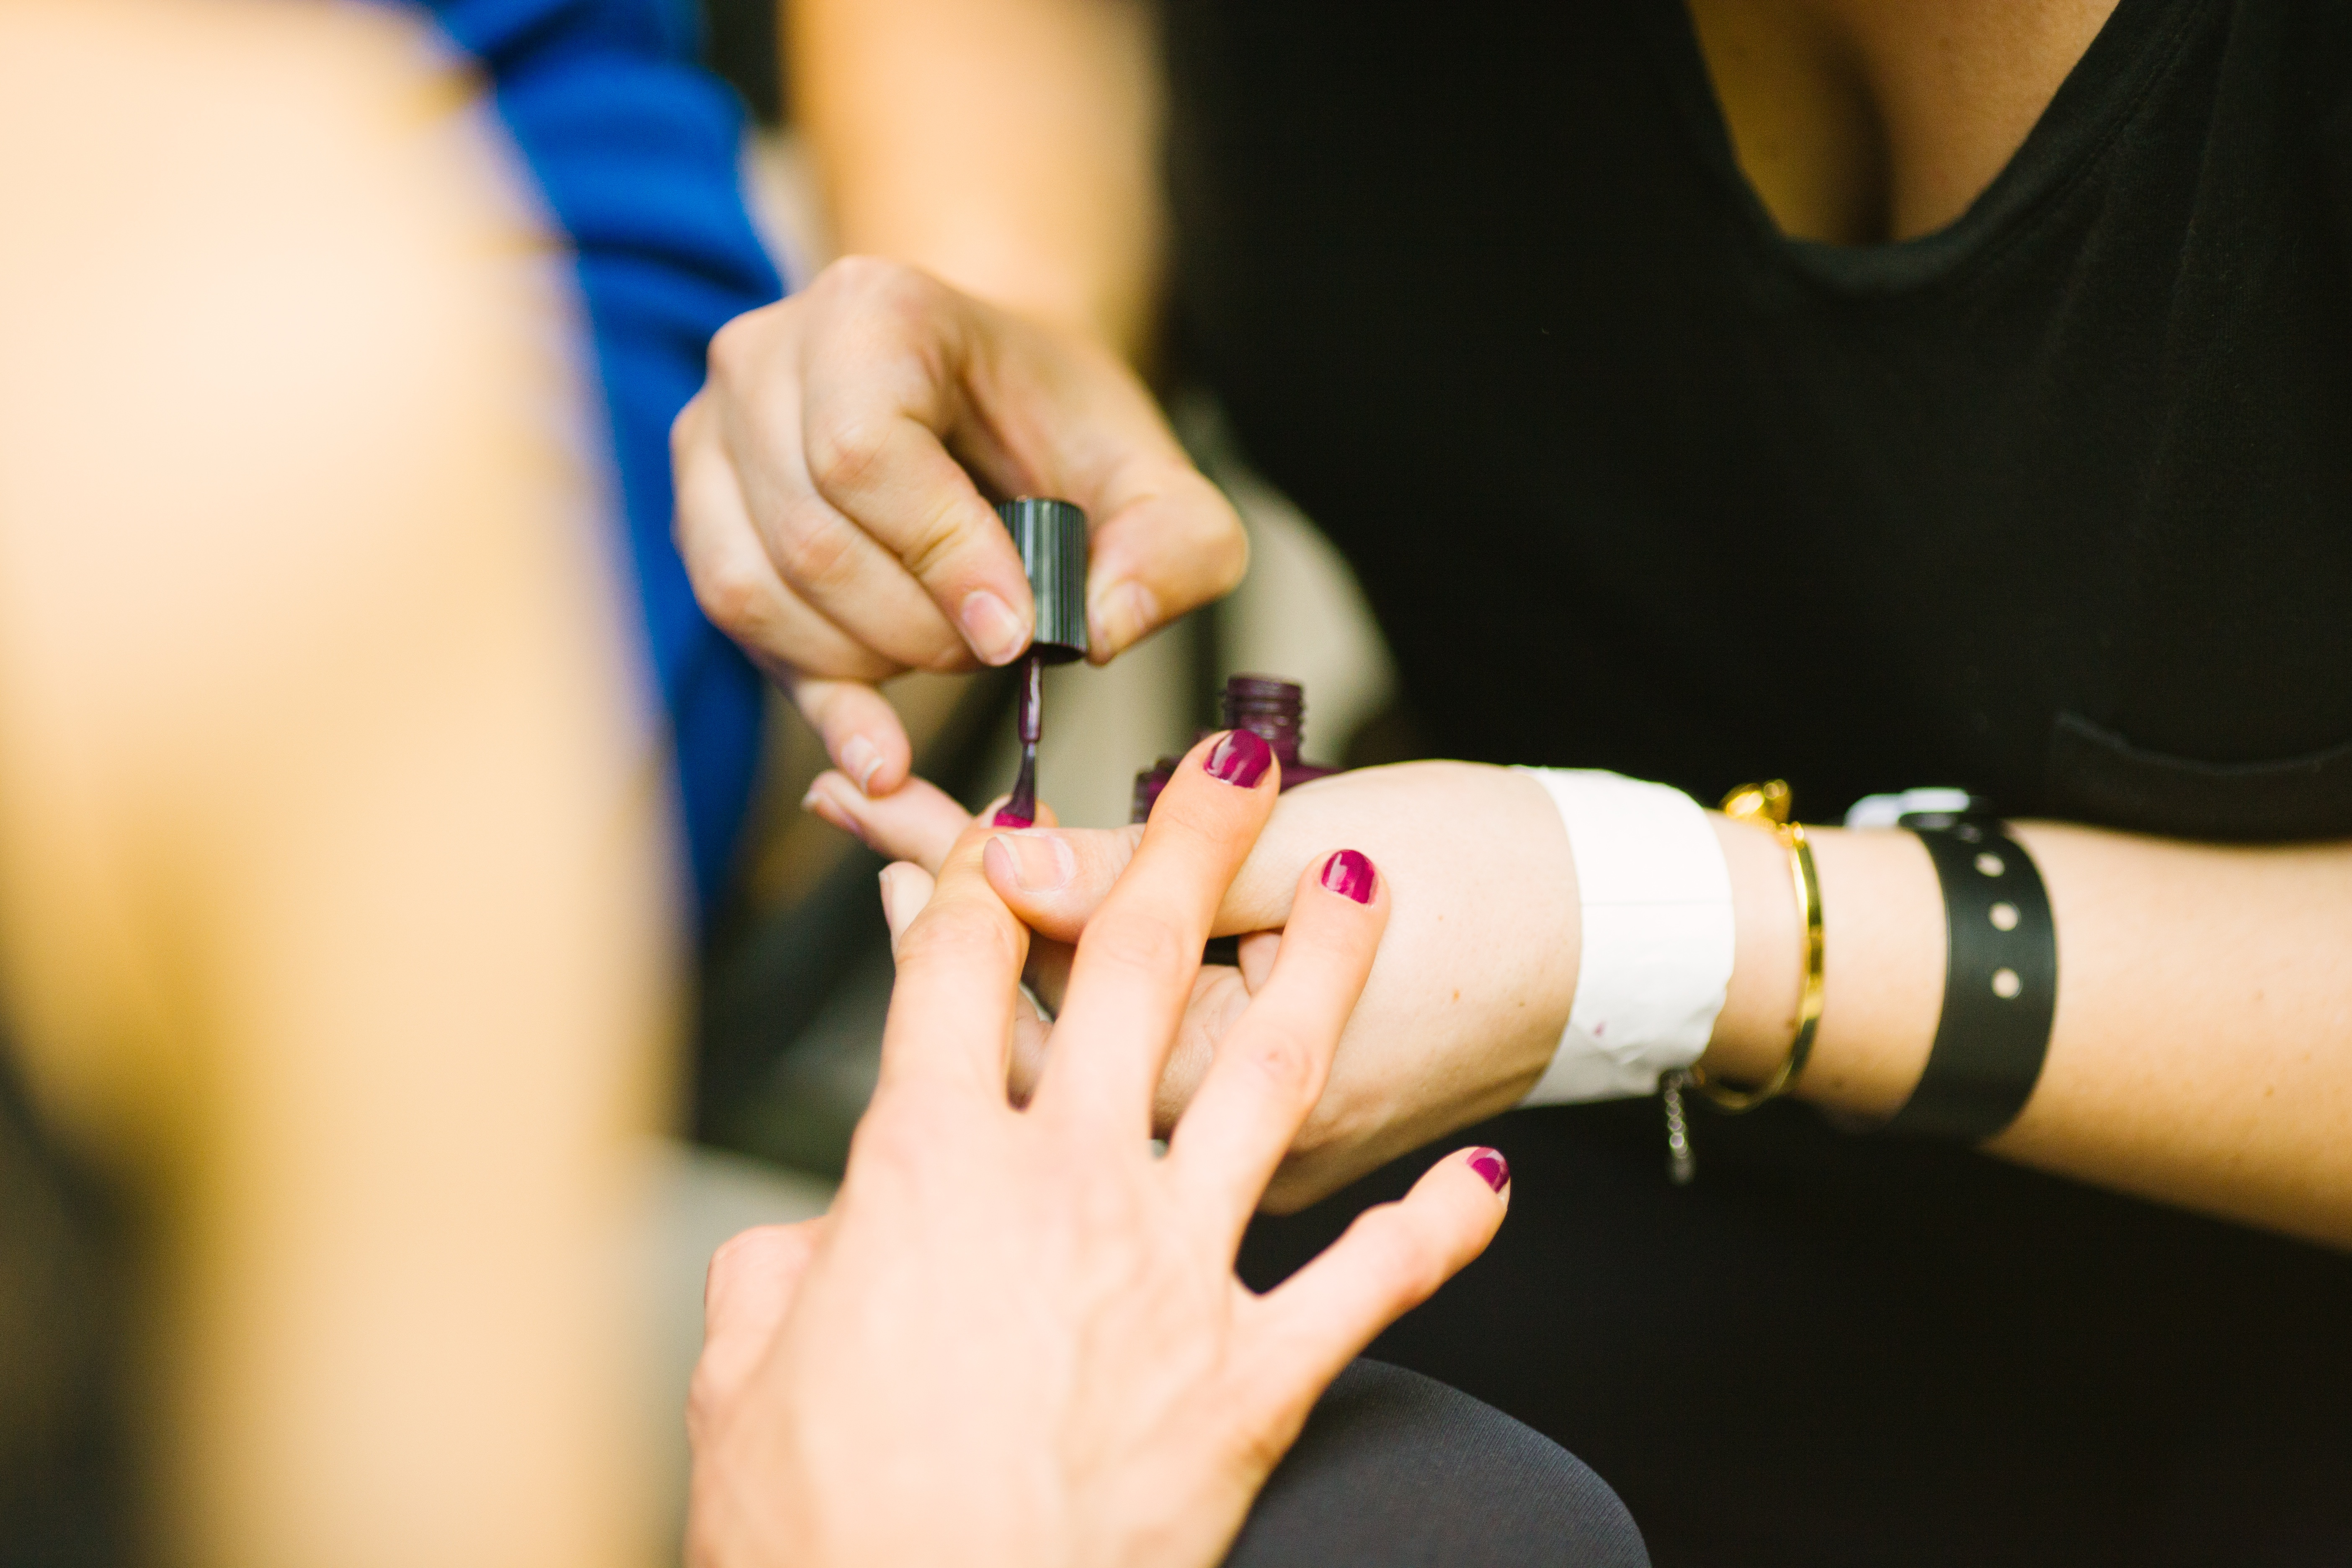 Artificial Nails Come at a Price Beyond the Cost of a Mani